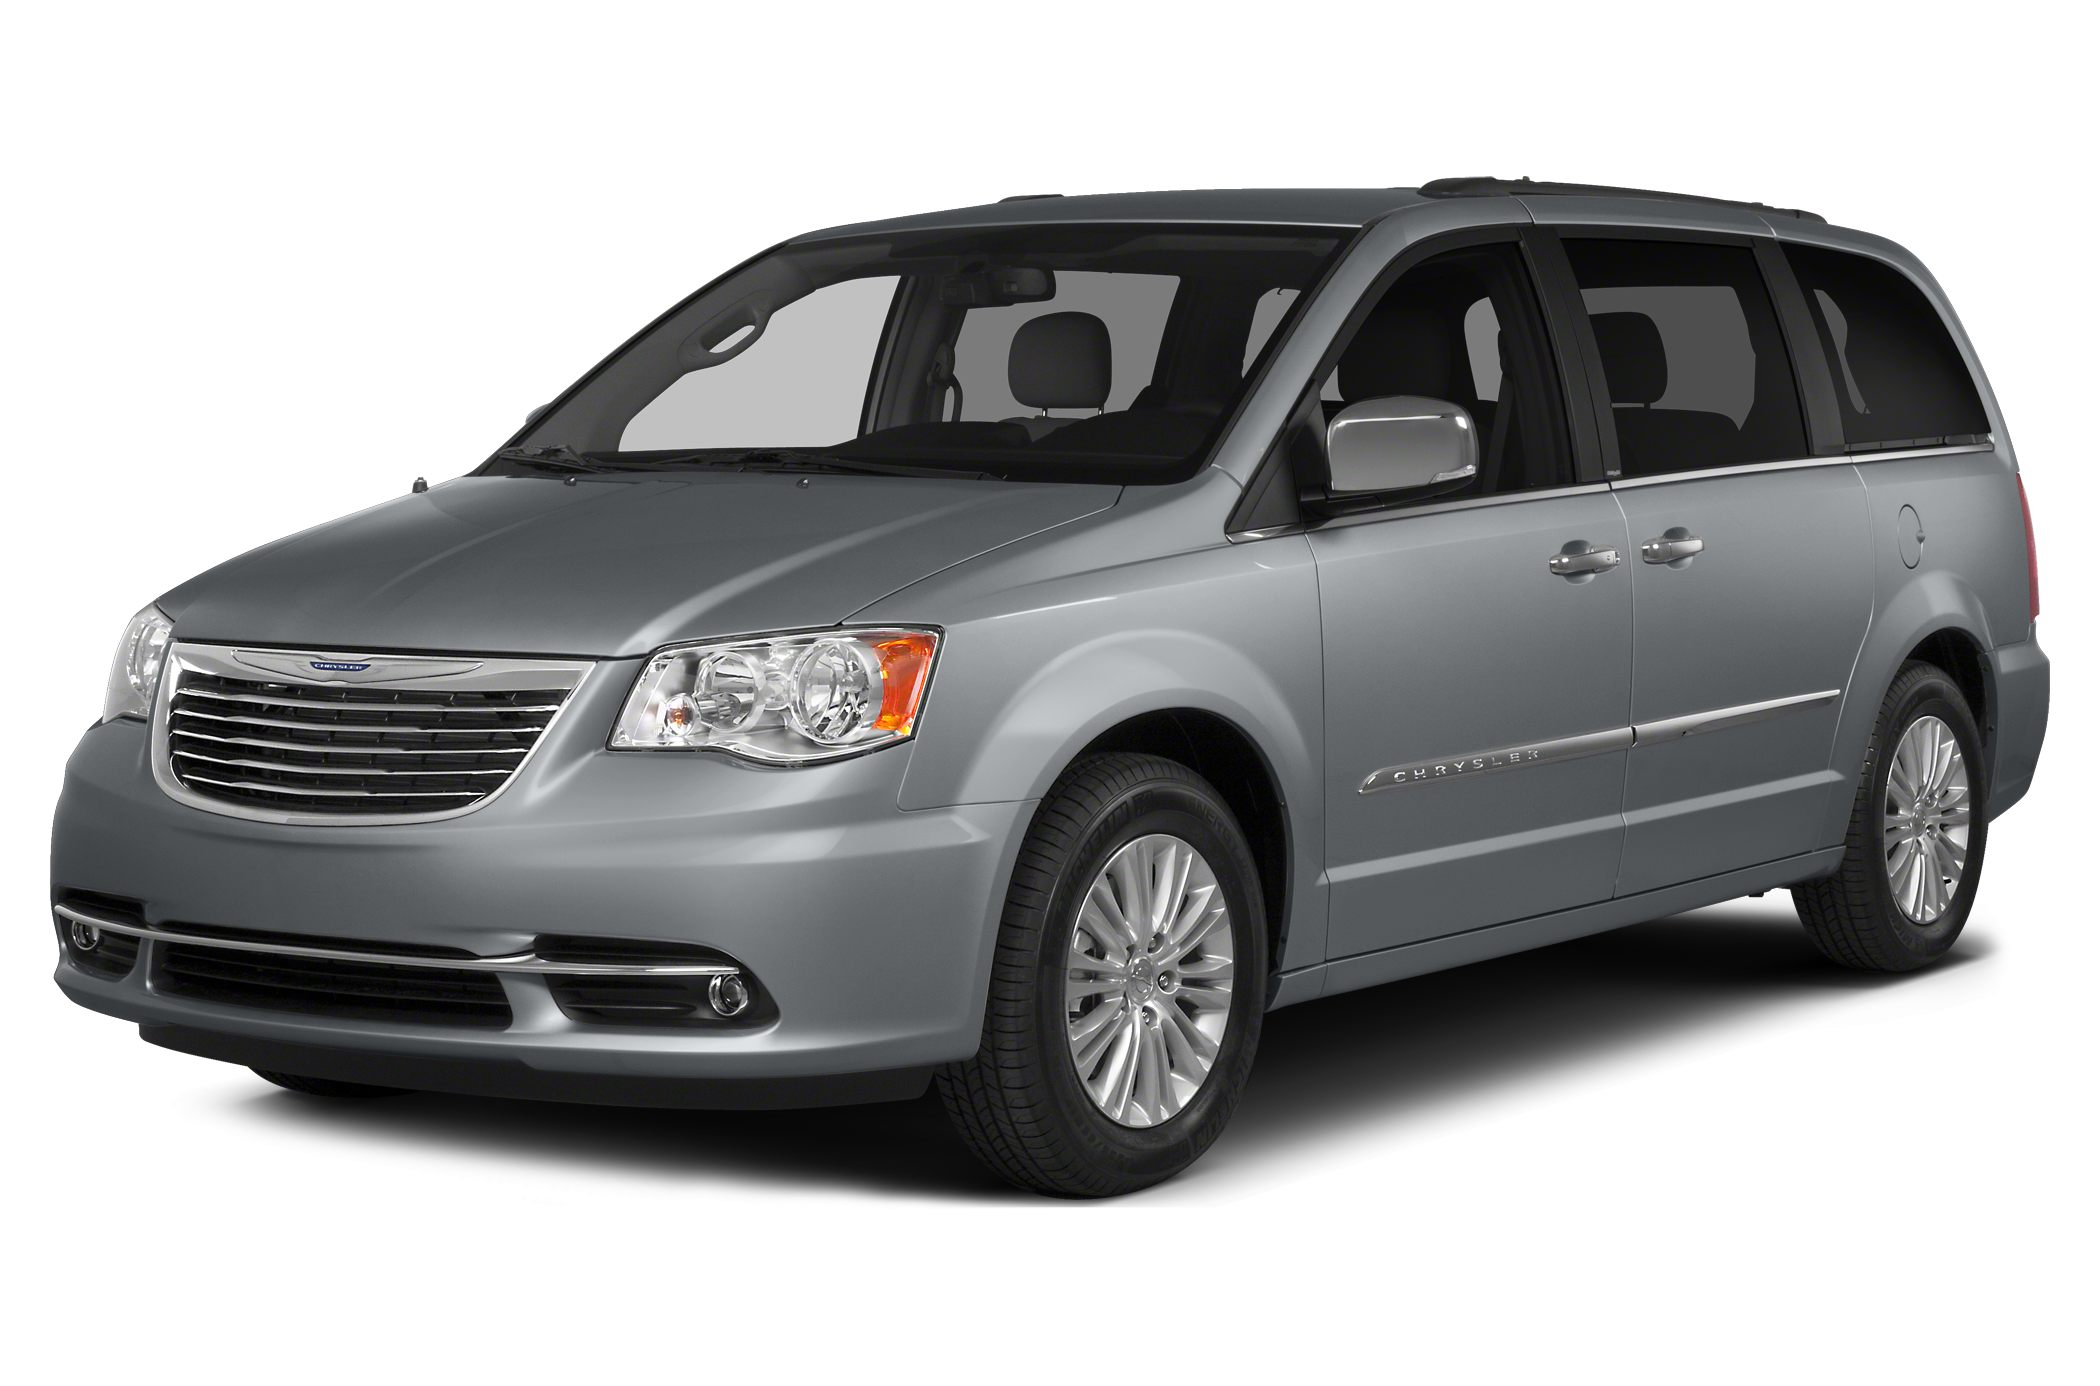 2015 Chrysler Town & Country Touring Minivan for sale in San Jose for $33,350 with 5 miles.